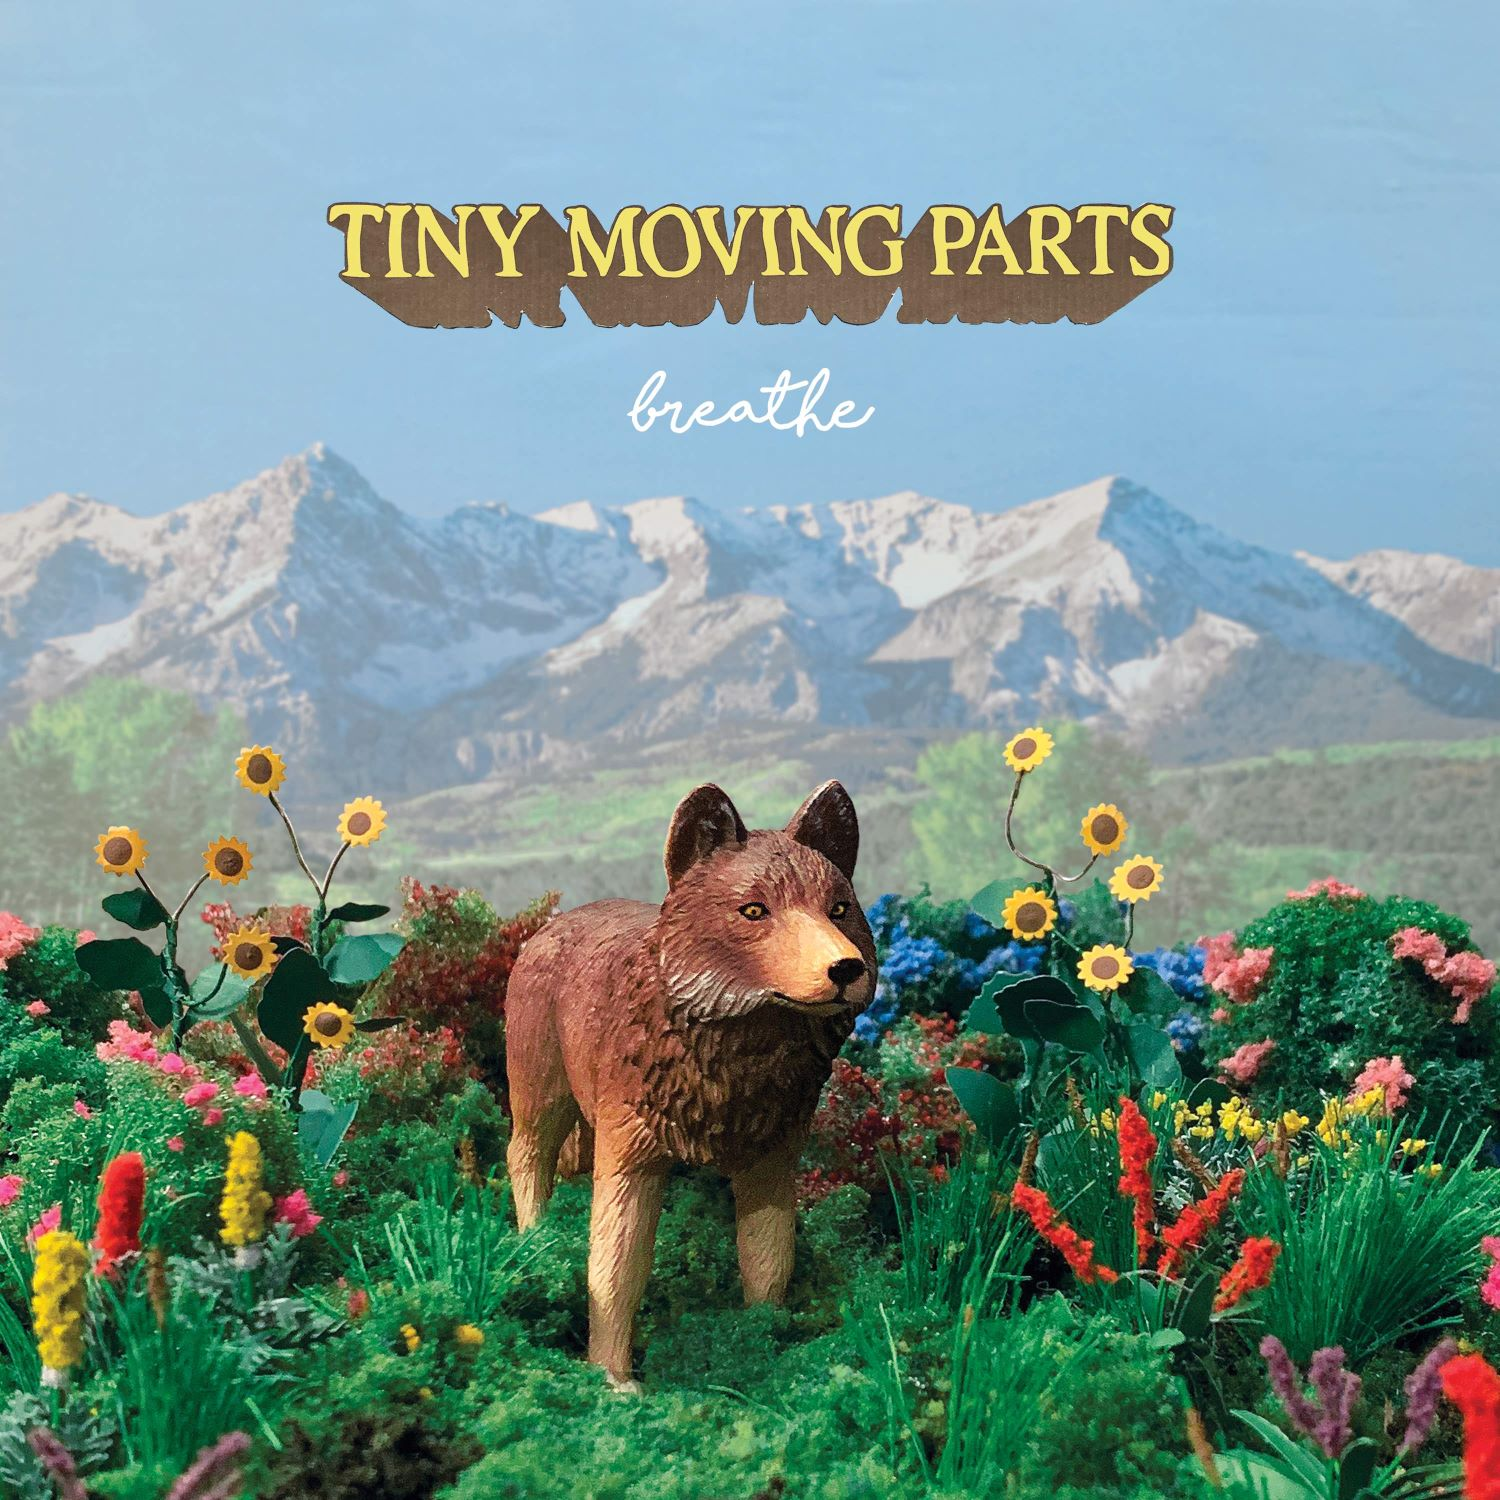 Tiny Moving Parts breathe artwork